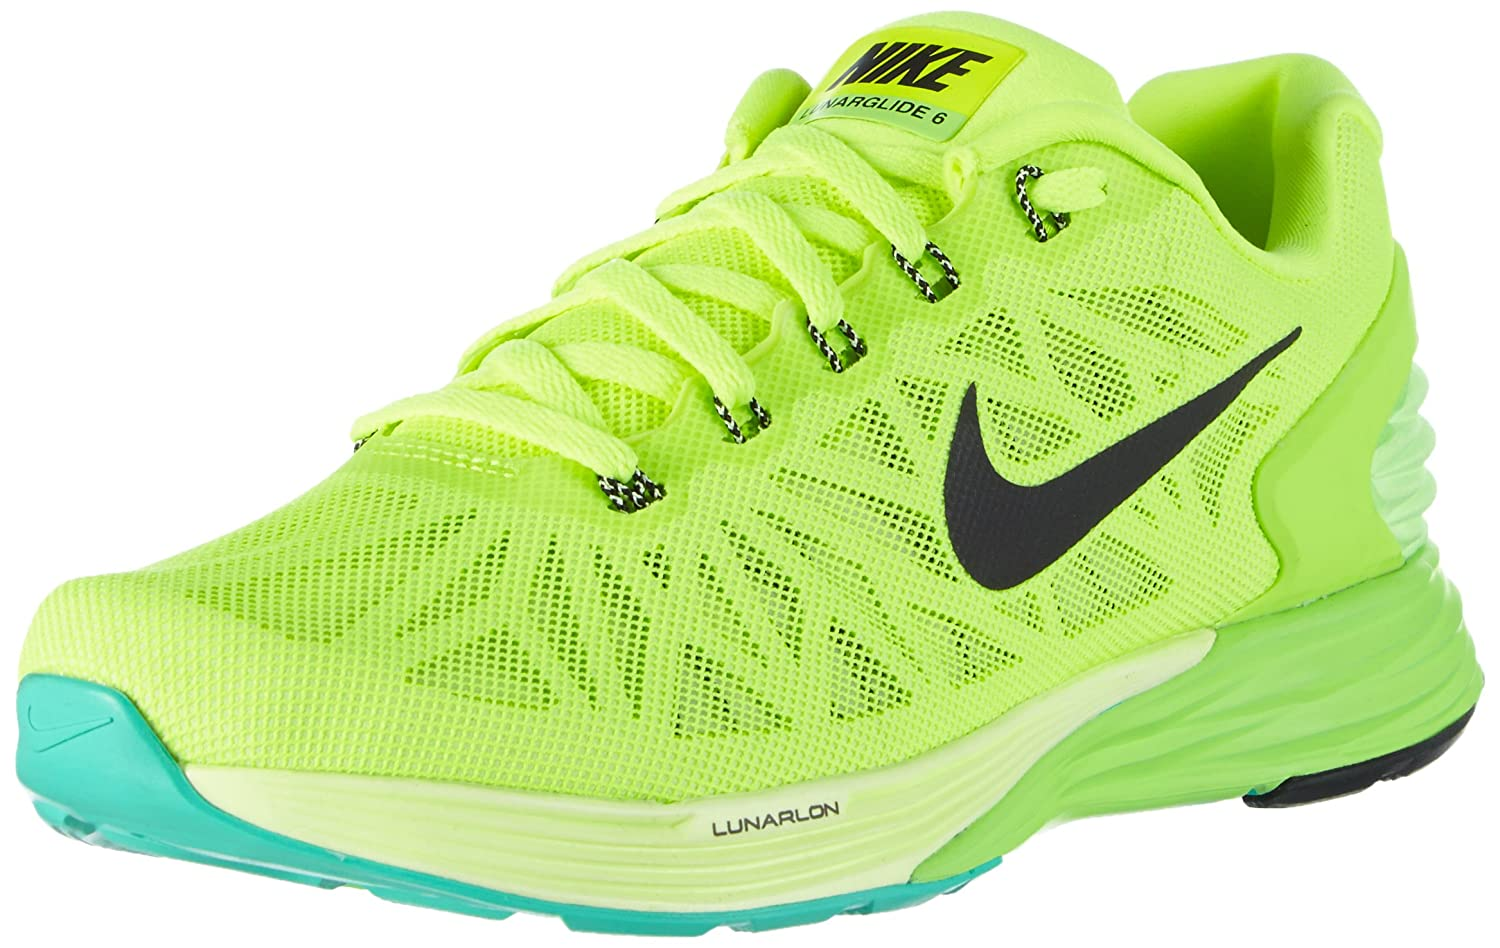 huge discount fe4bf ff4ea ... running trainers for men e4467 9738c  sweden new style nike lunarglide  6 shoes 0b325 9c726 new zealand nike lunarglide 6 654433 701